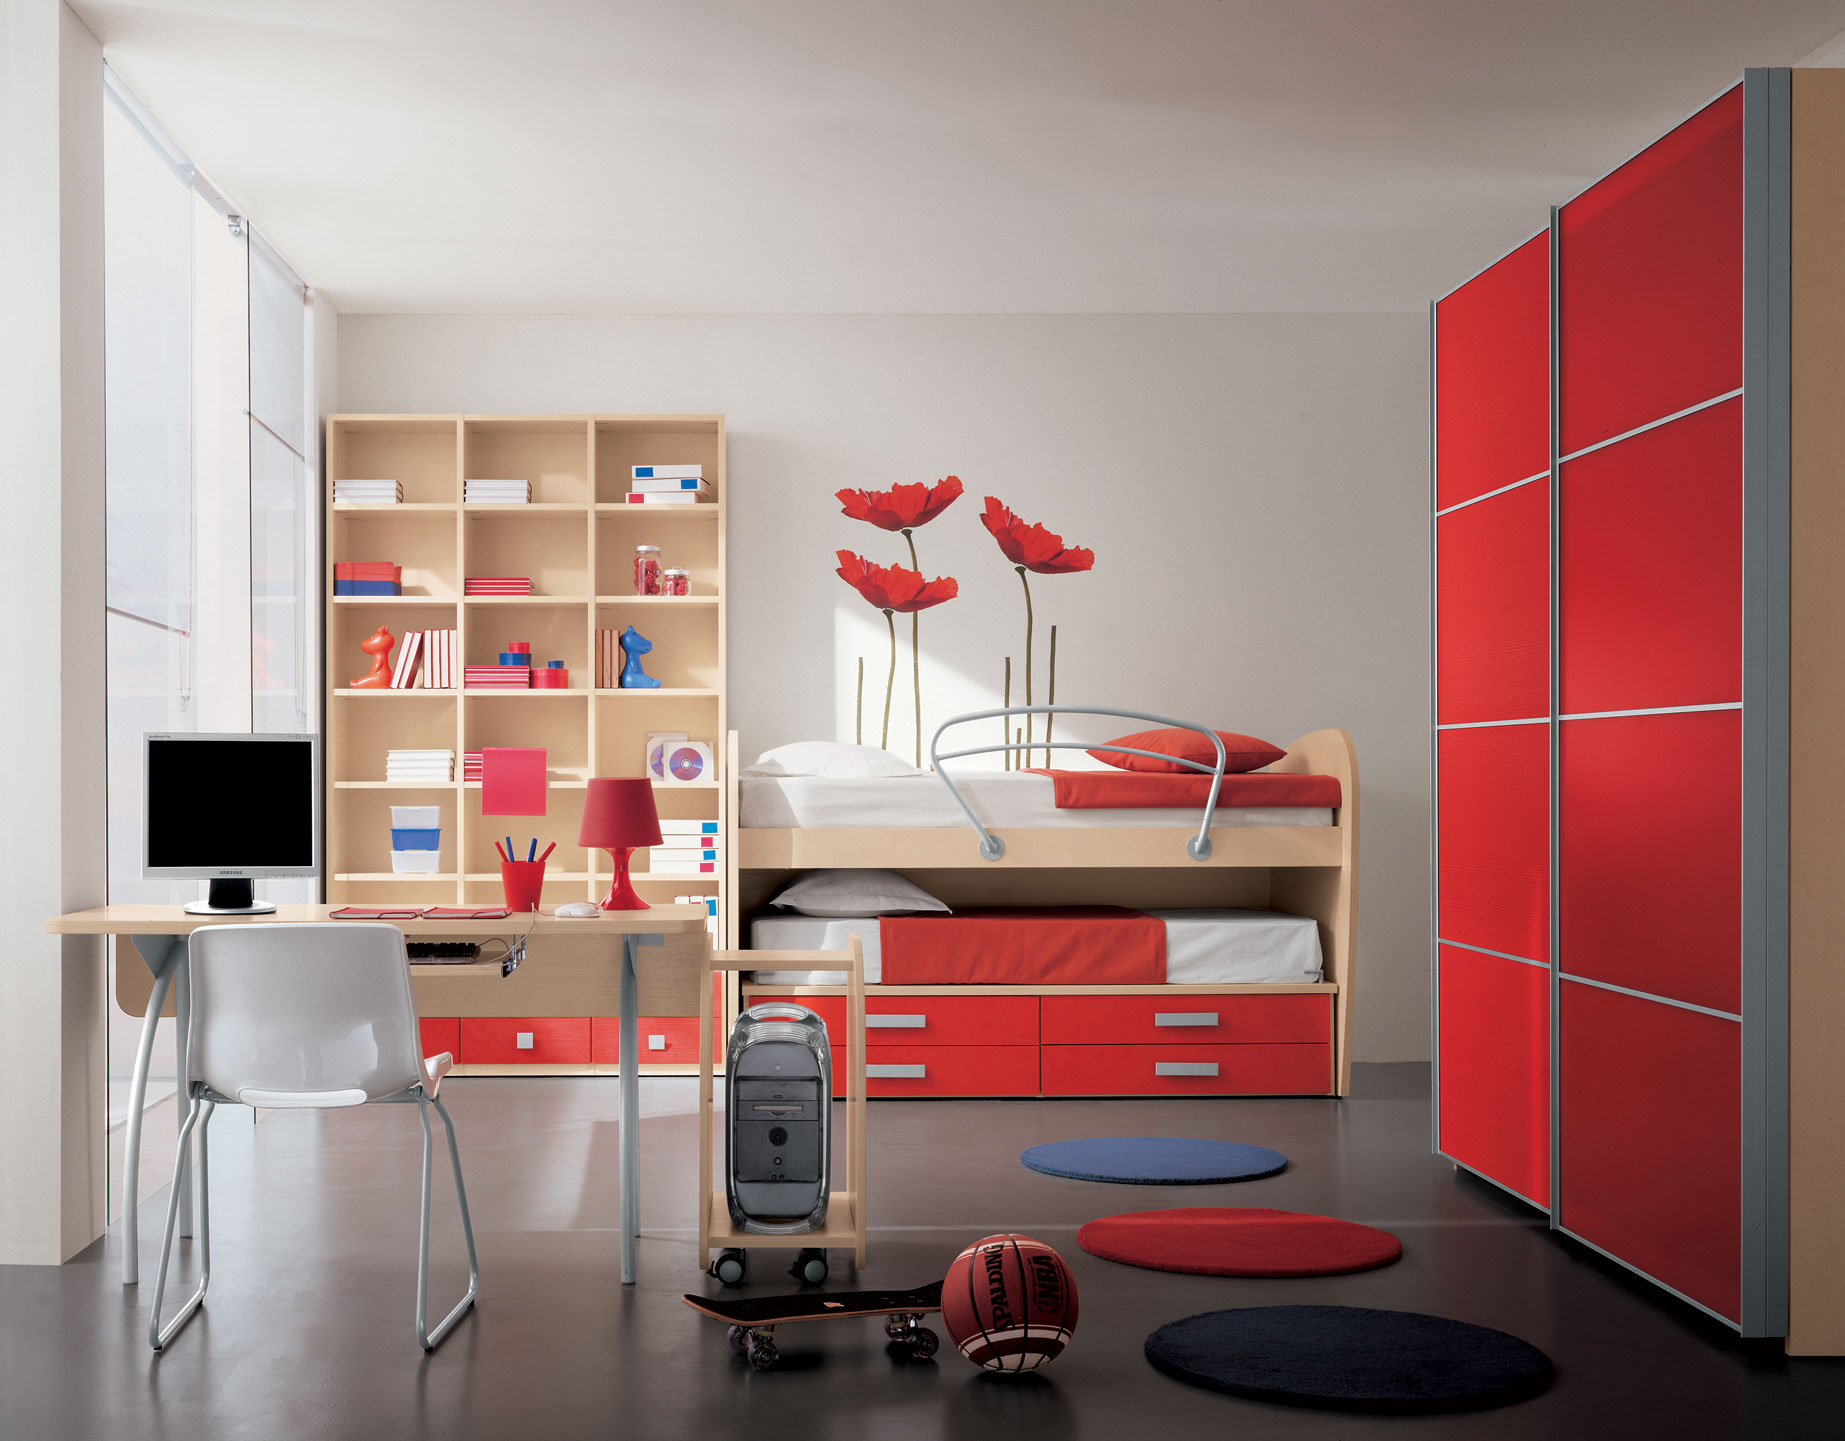 Amazing Modern Kids Room Ideas 1845 x 1441 · 279 kB · jpeg